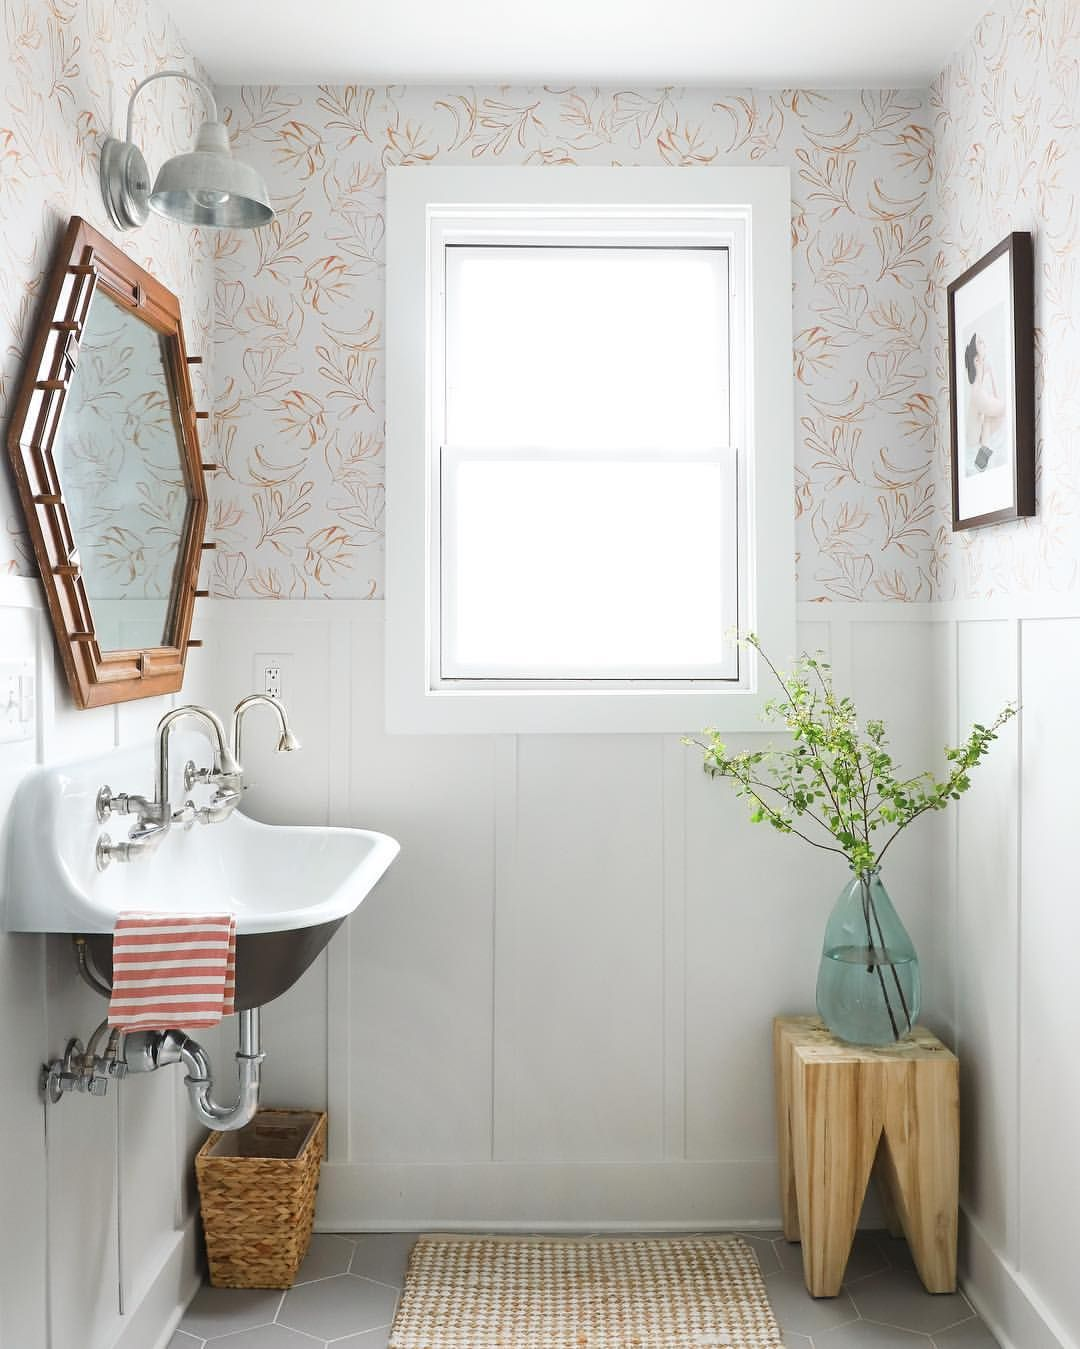 Always Moving Things Around It S Fun To Have This Log Of Images So I Can Look Back And See What I Like Best This R Bathroom Makeover I Spy Diy Guest